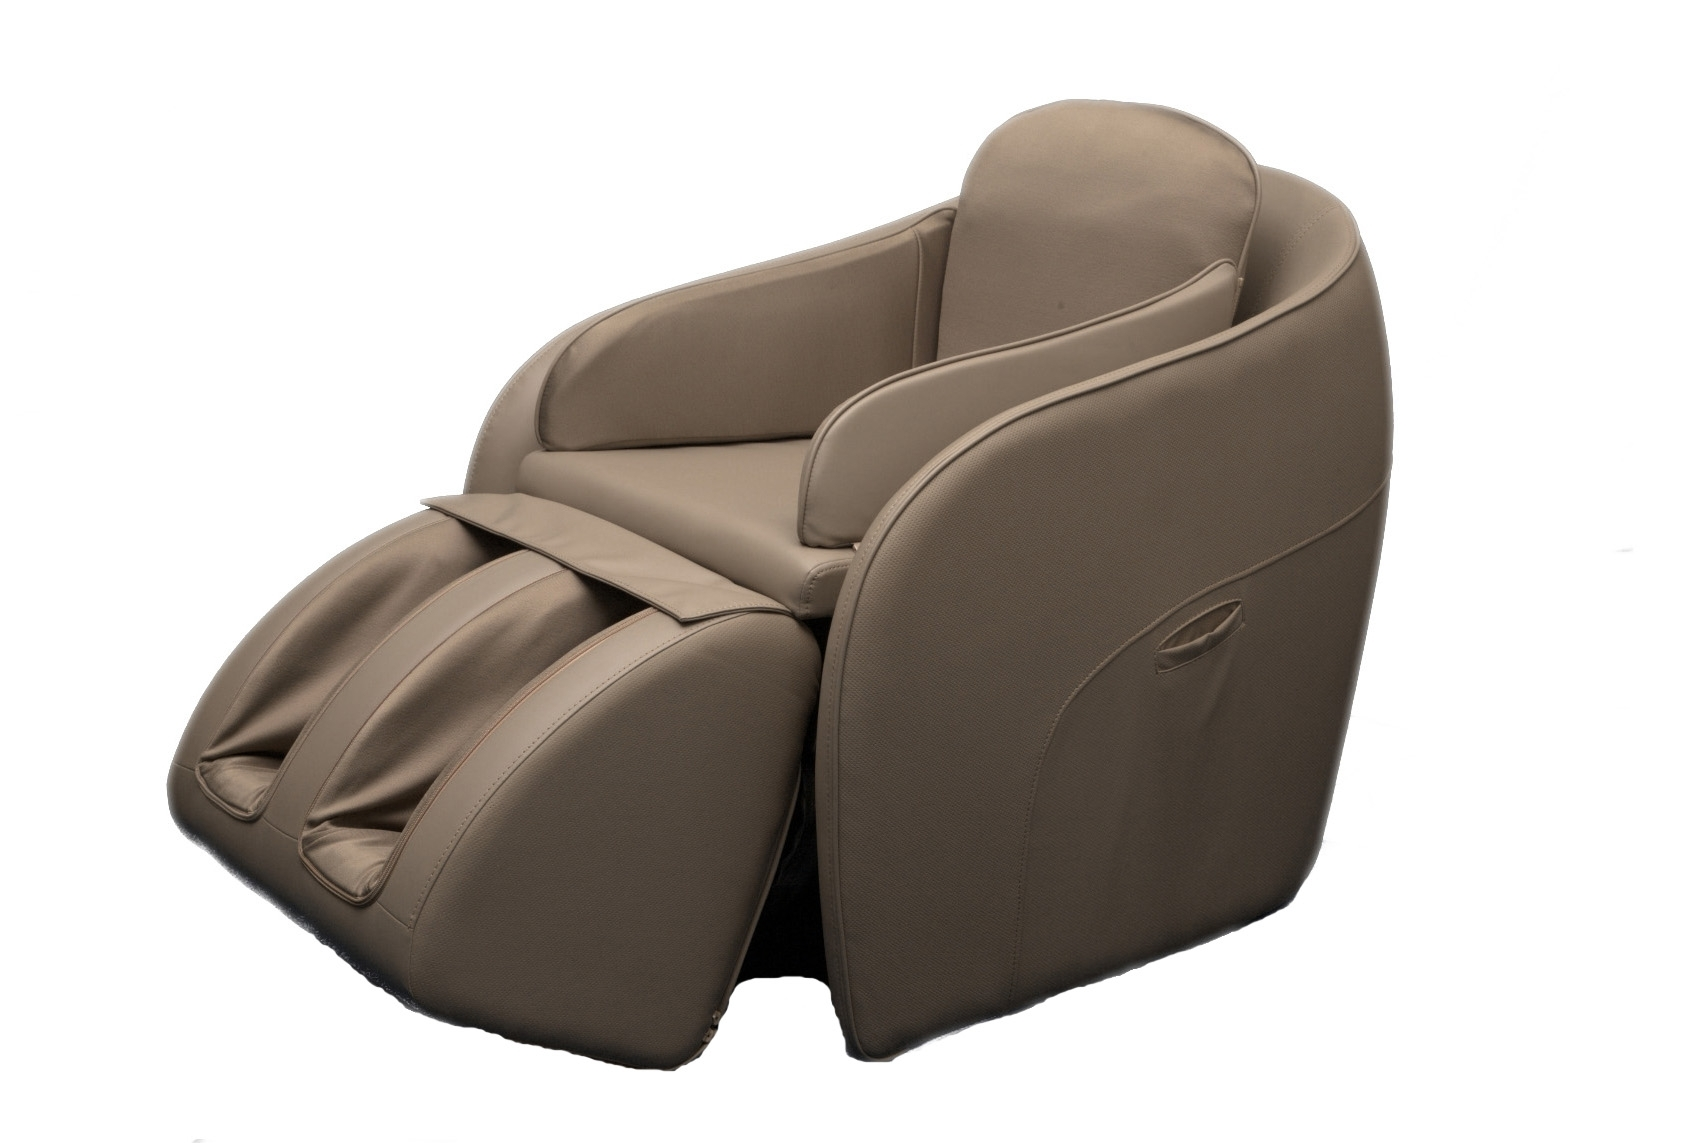 Modern Concept Foot Massage Chairs With Portable Foot Massage Sofa With Regard To Foot Massage Sofas (View 3 of 10)